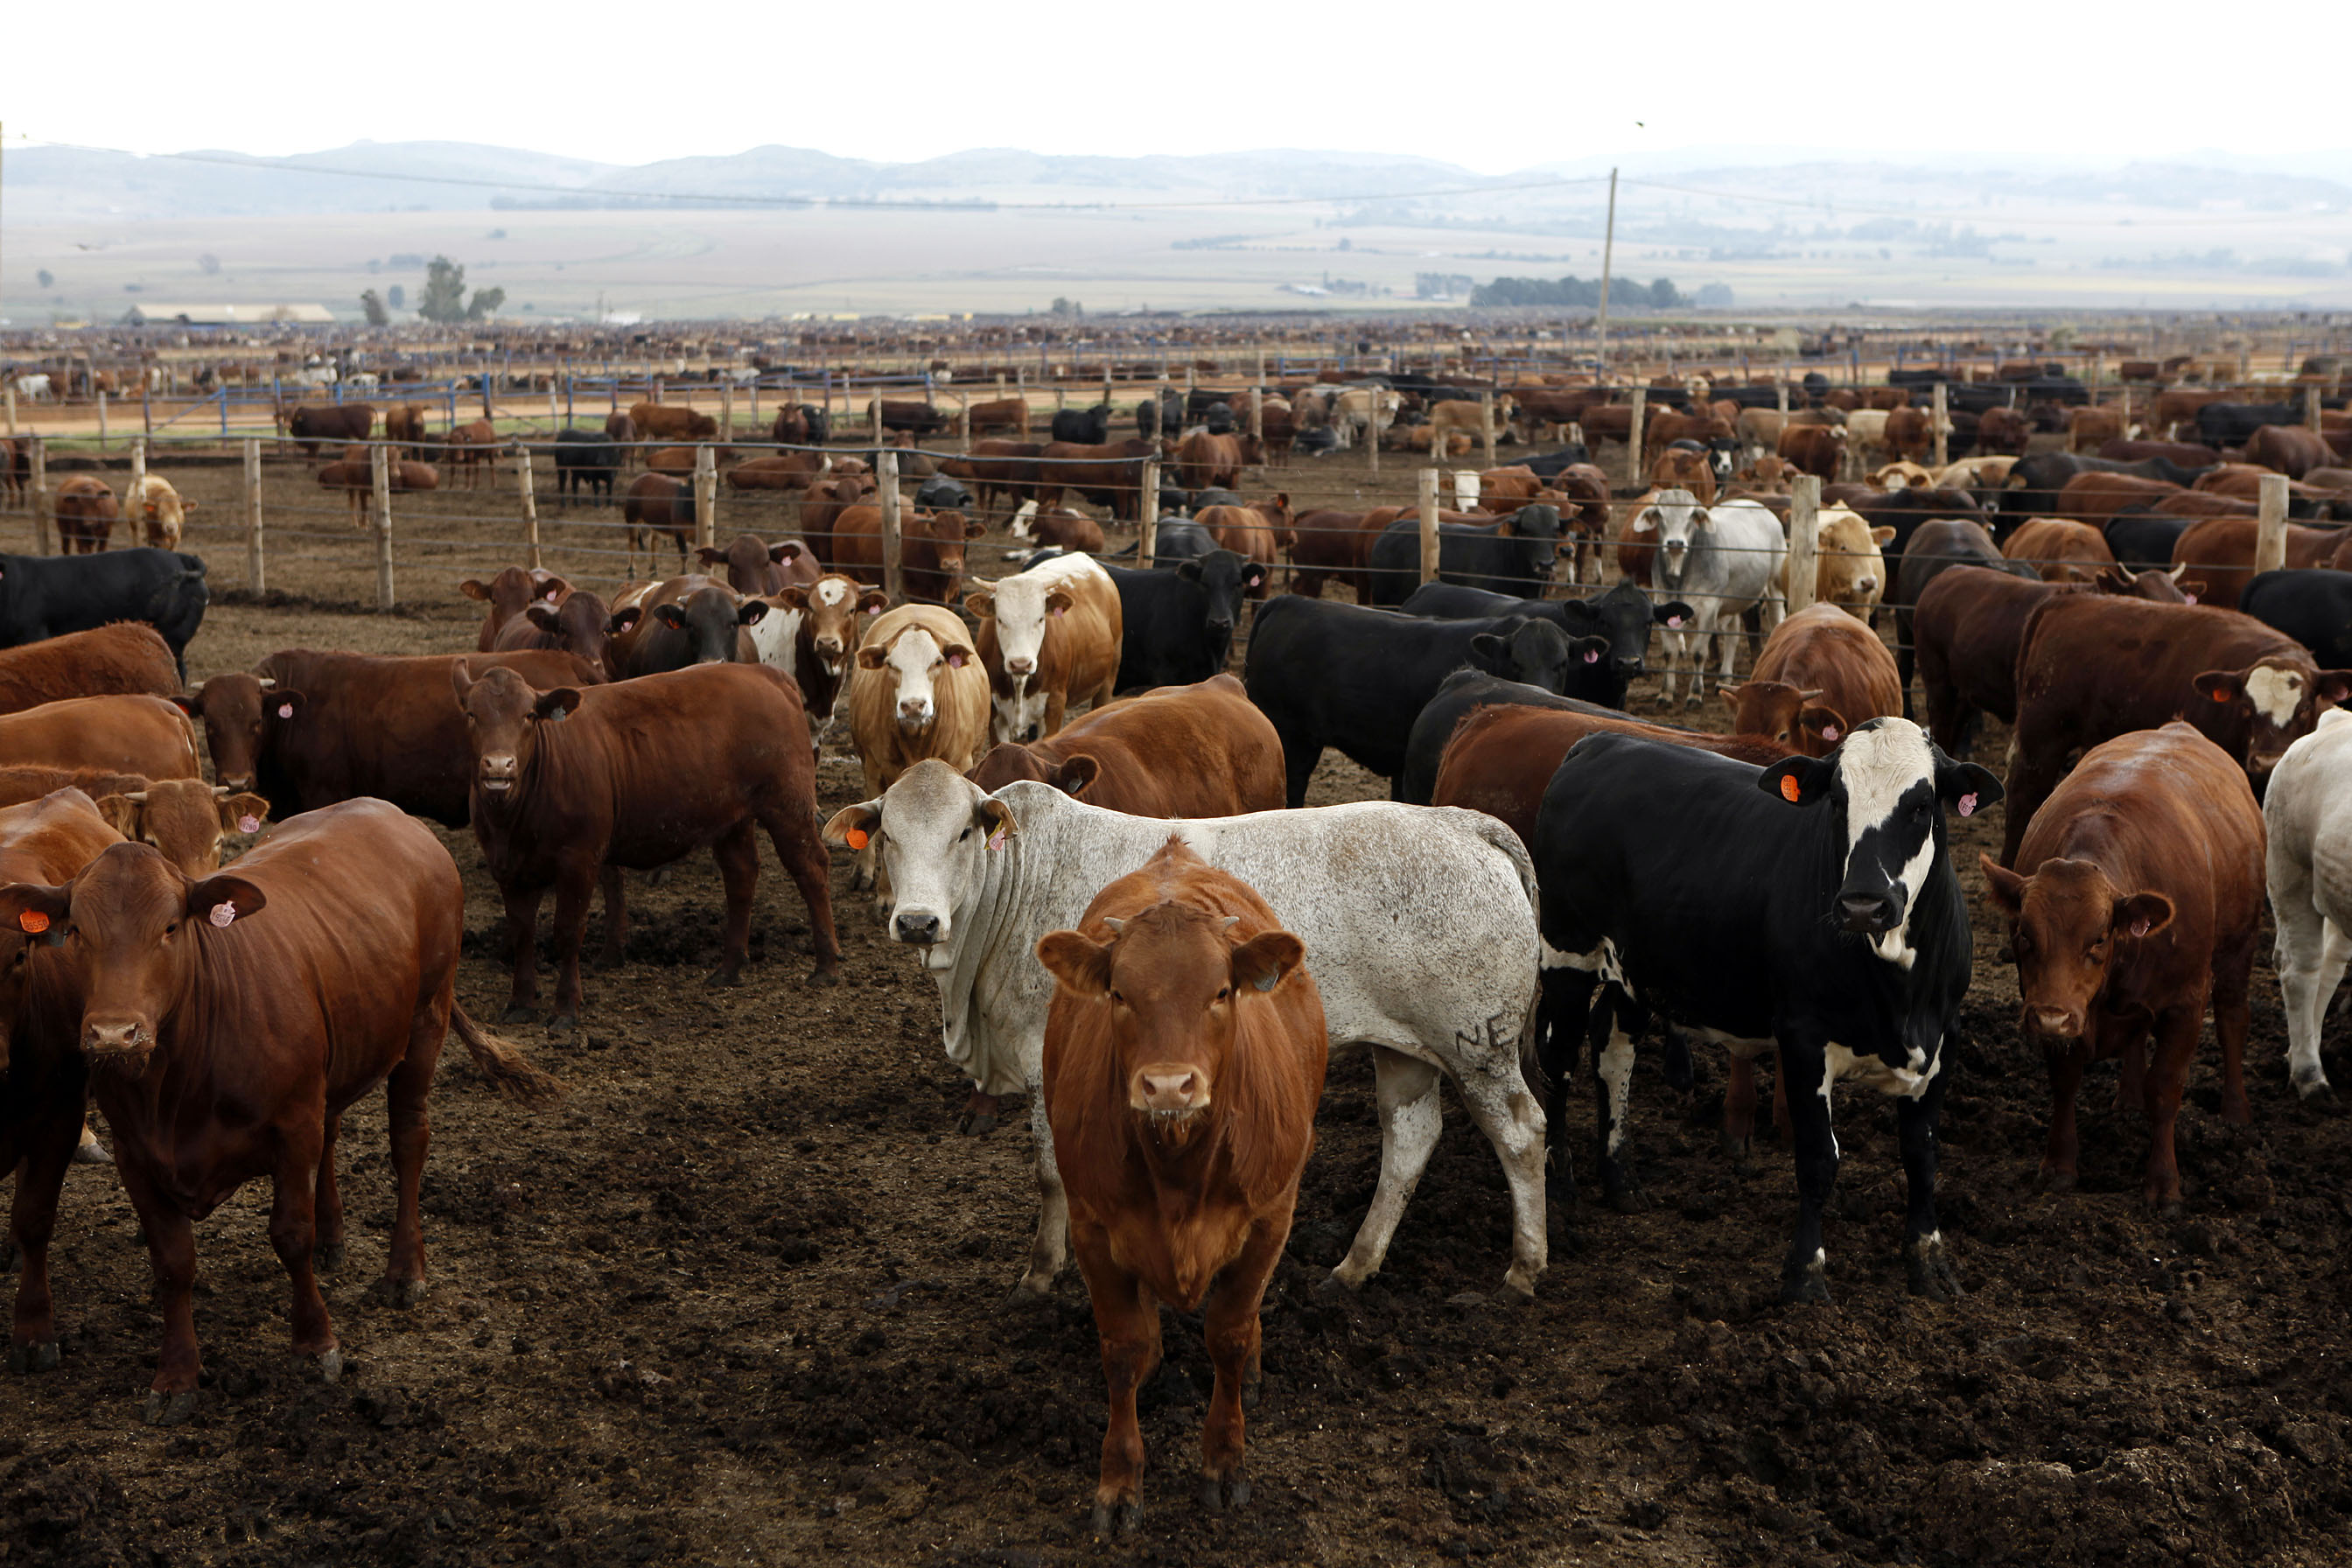 13 April 2011: Cattle on a Karan Beef farm outside Heidelberg, south-east of Johannesburg. Karan and food giant I&J are before the Competition Tribunal charged with colluding in the beef industry. (Photograph by Reuters/Siphiwe Sibeko)